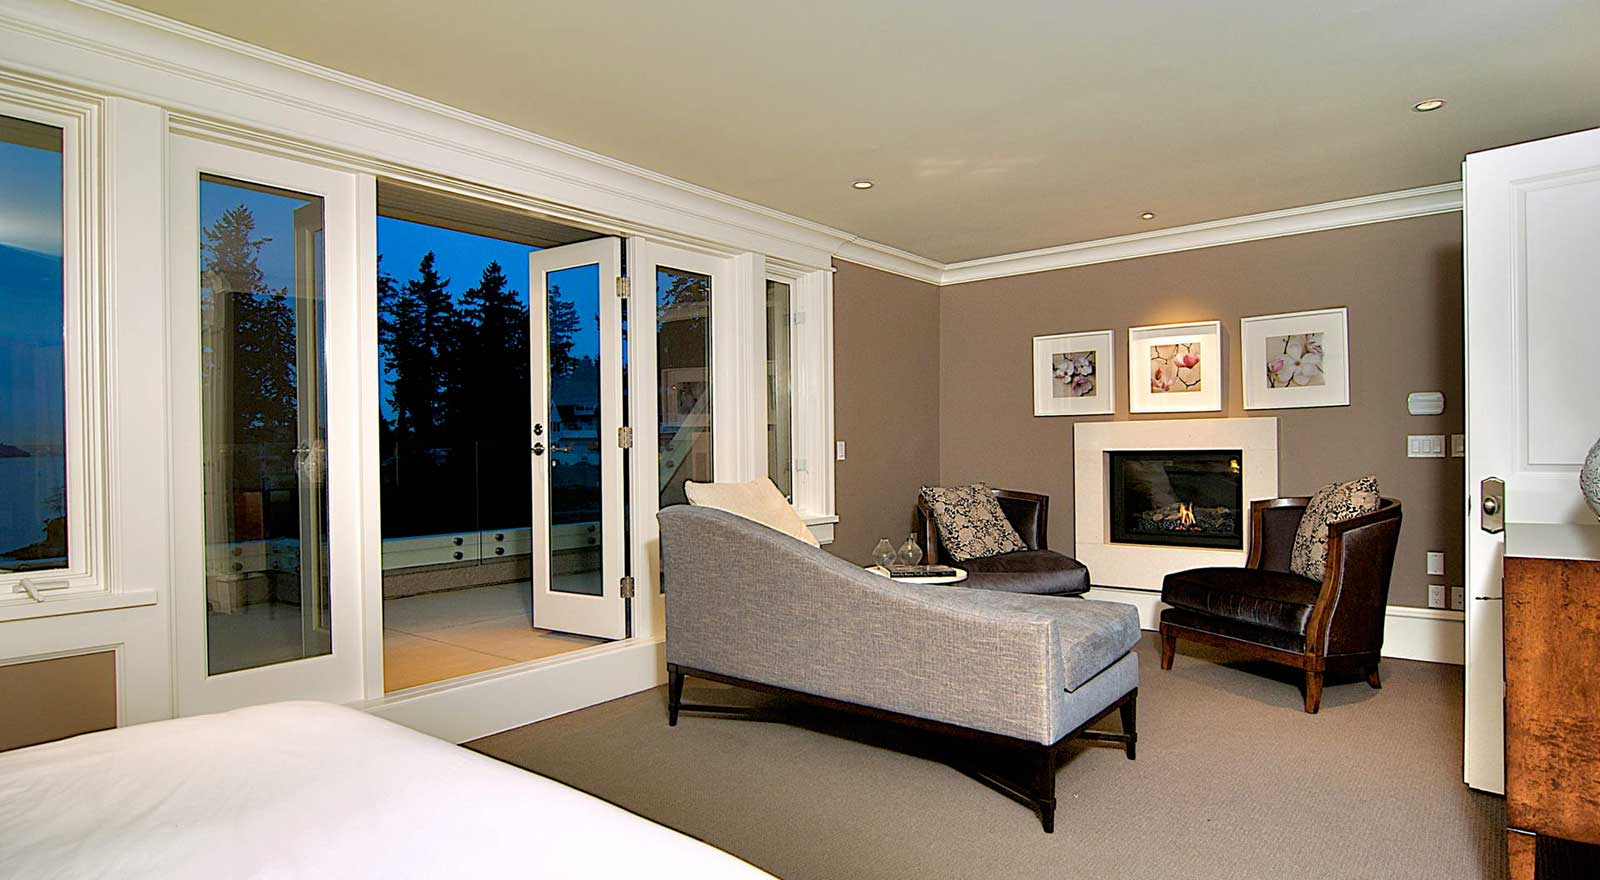 Master Bedroom Ideas: Considering The Aspects